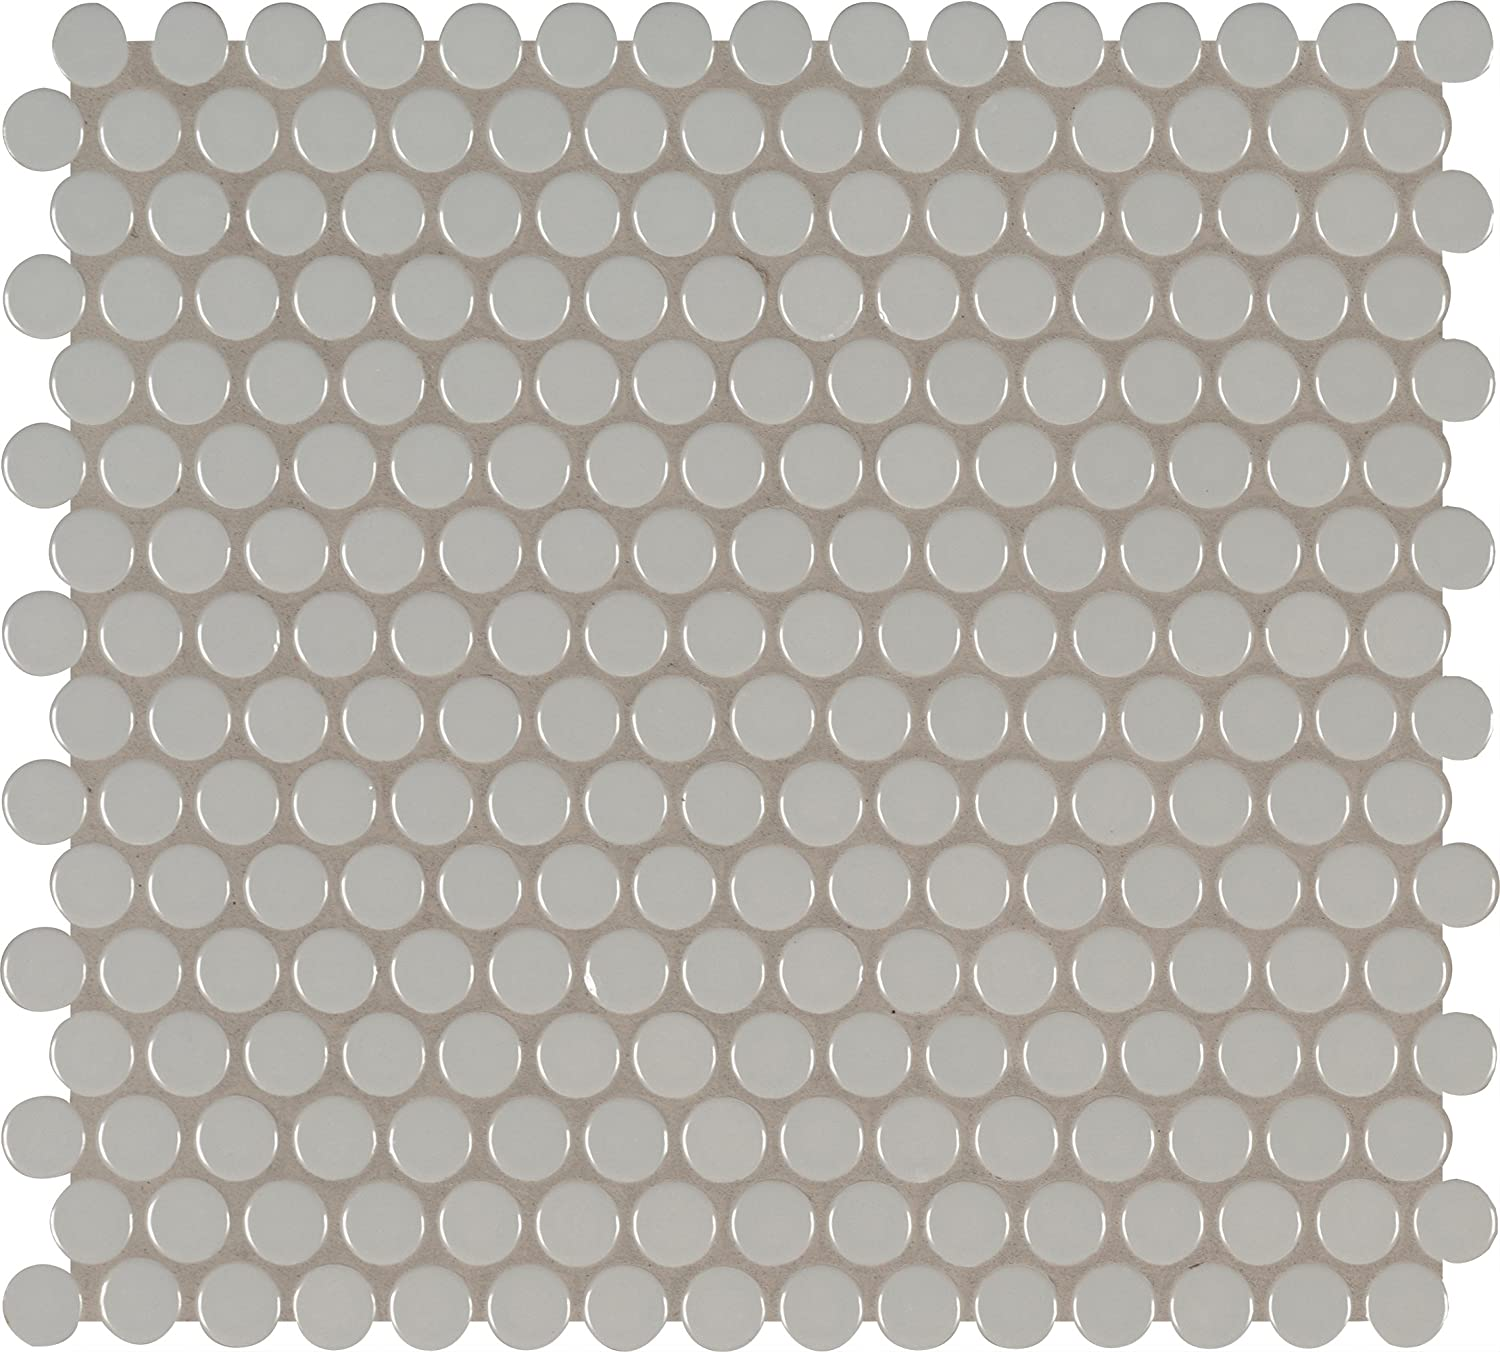 MS International AMZ-M-00230 Gray Glossy Penny Round Mosaic Tile, 11.57in x 15in, 20 Piece